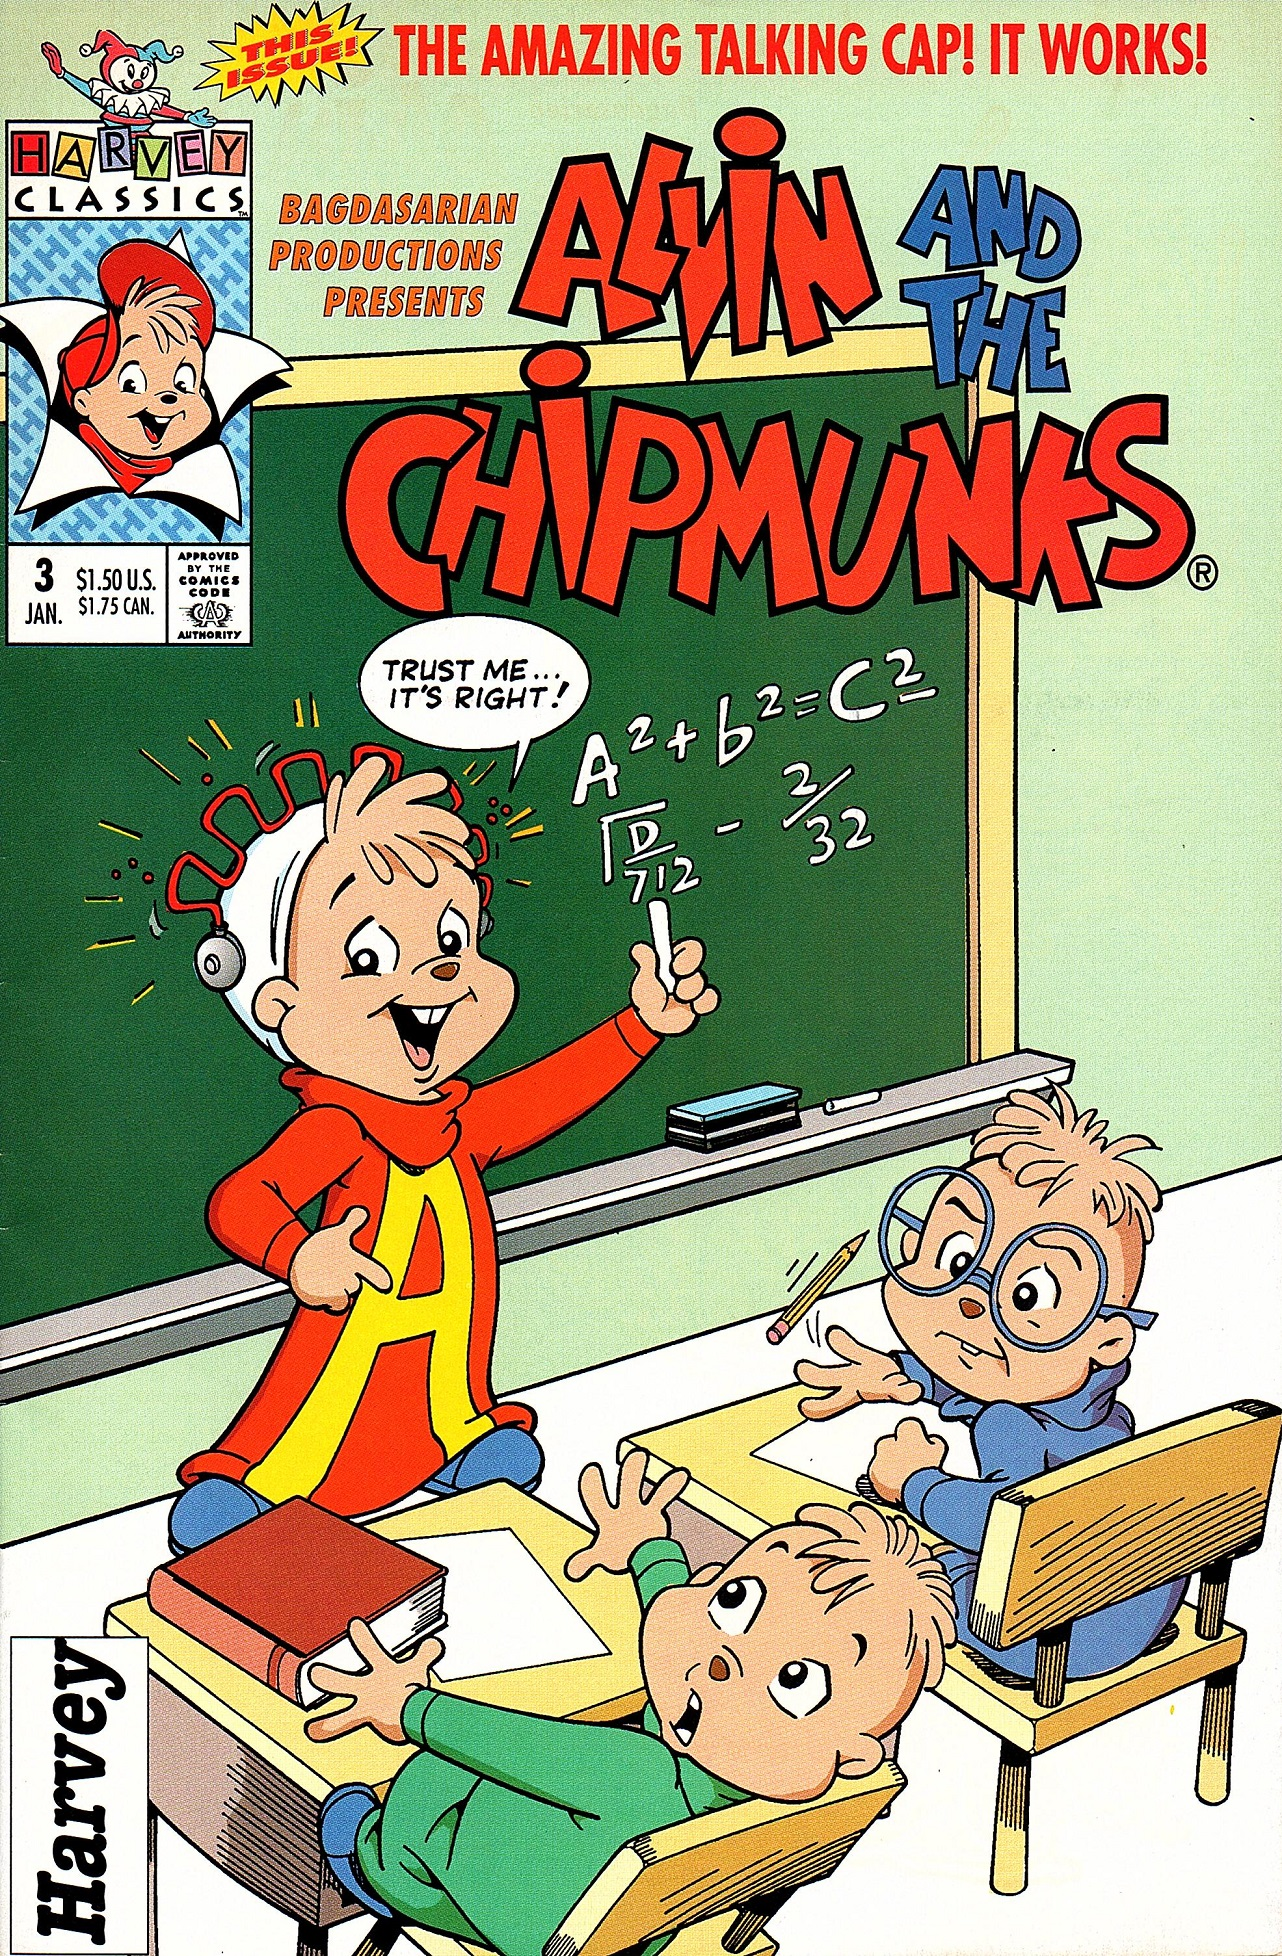 Alvin And The Chipmunks 3 Images alvin and the chipmunks harvey classics 3 | alvin and the